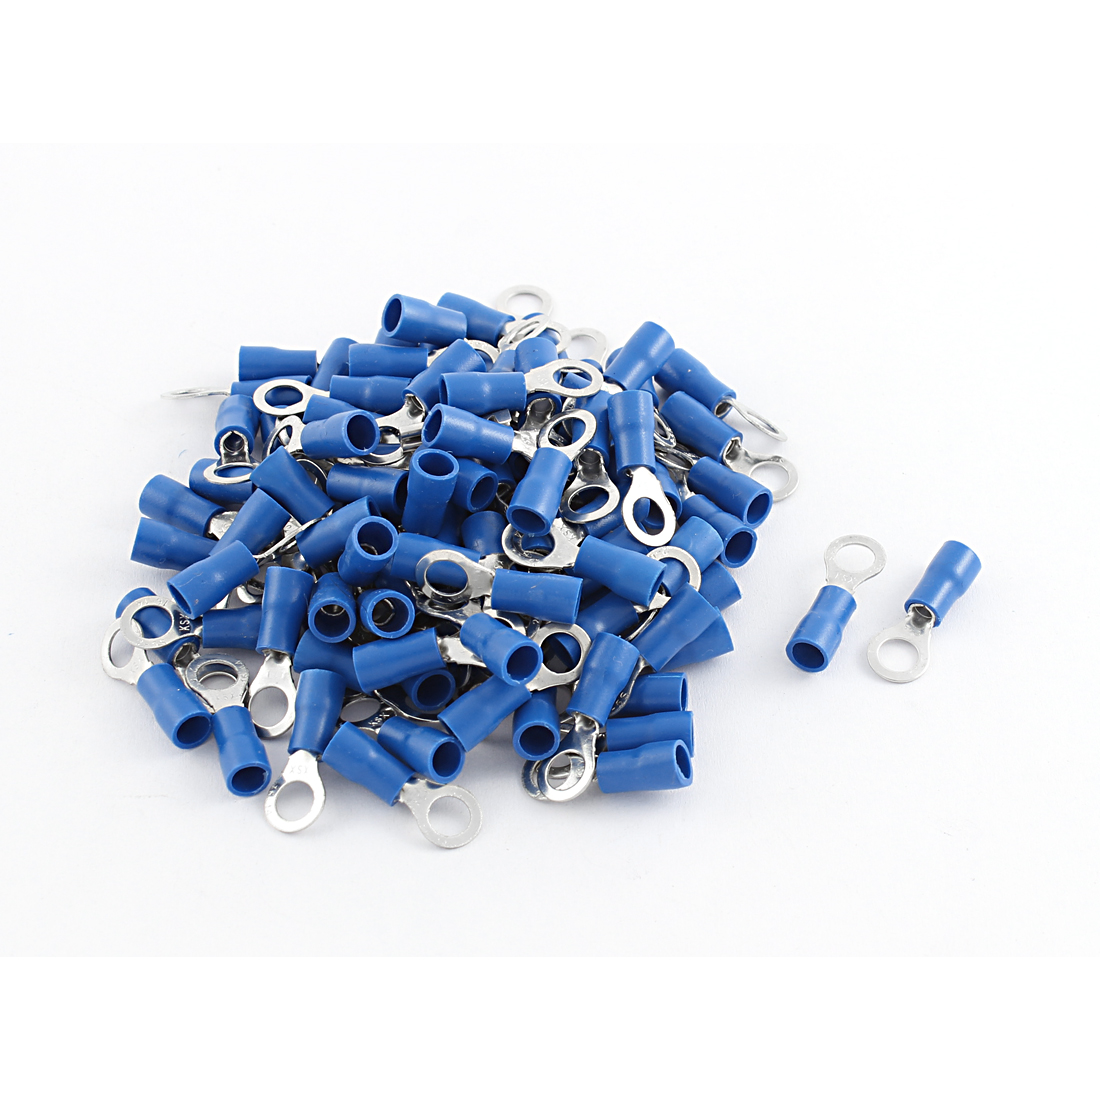 100pcs Ring Tongue Pre Insulated Terminals Connector Blue for AWG 16-14 Cable